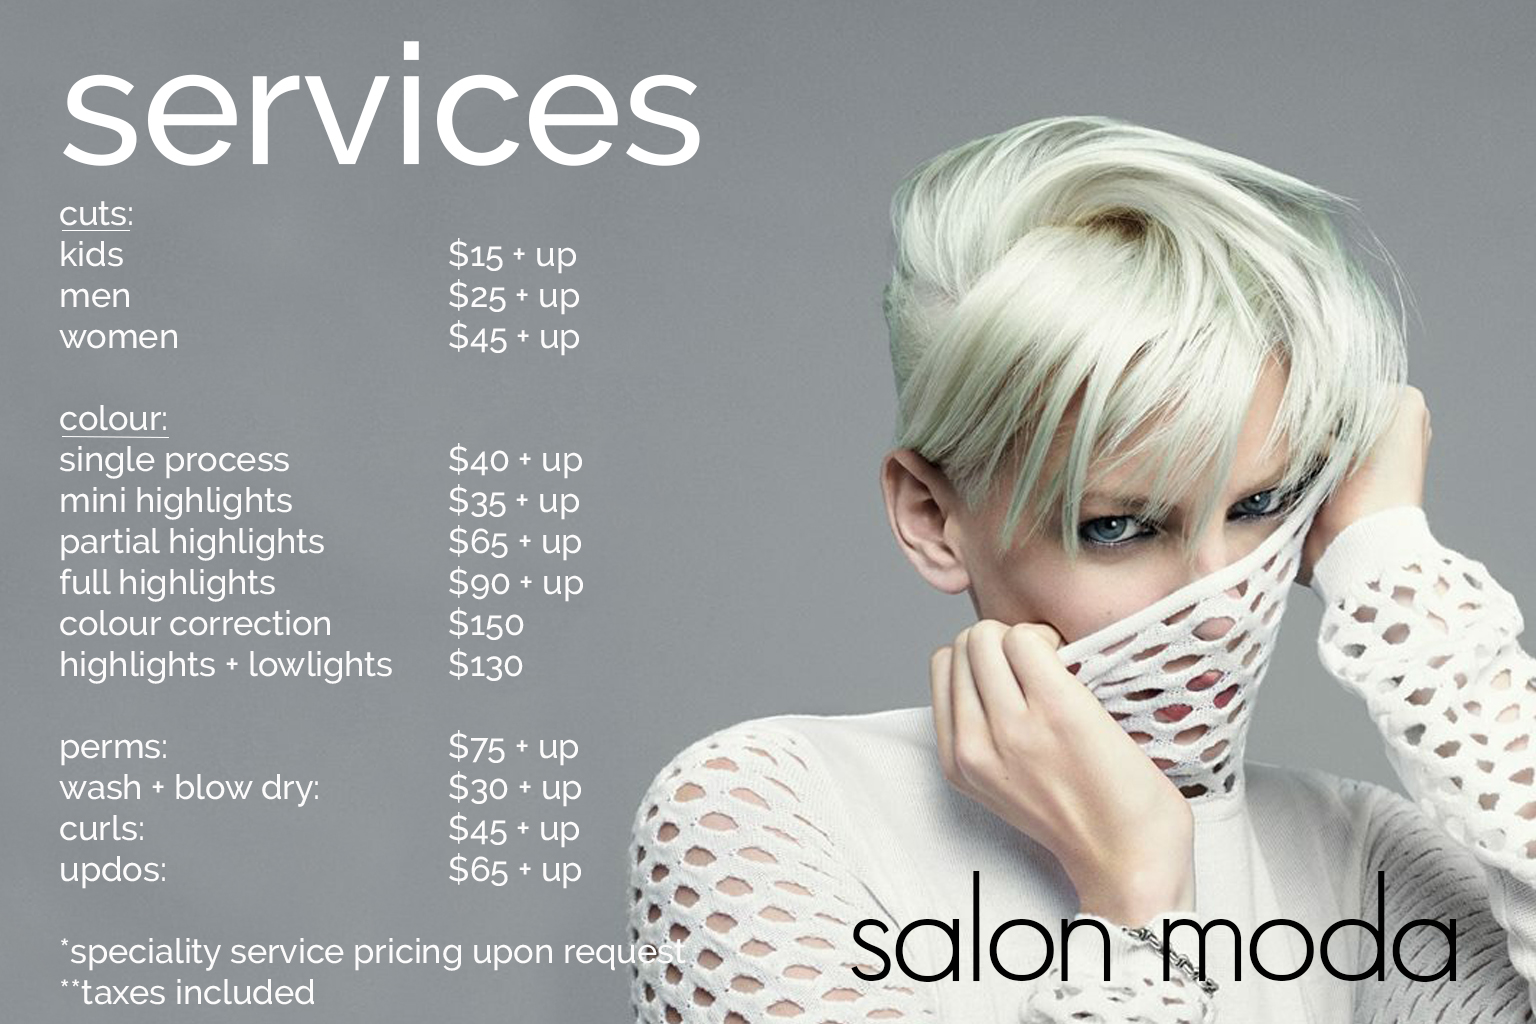 salon moda services (1).jpg